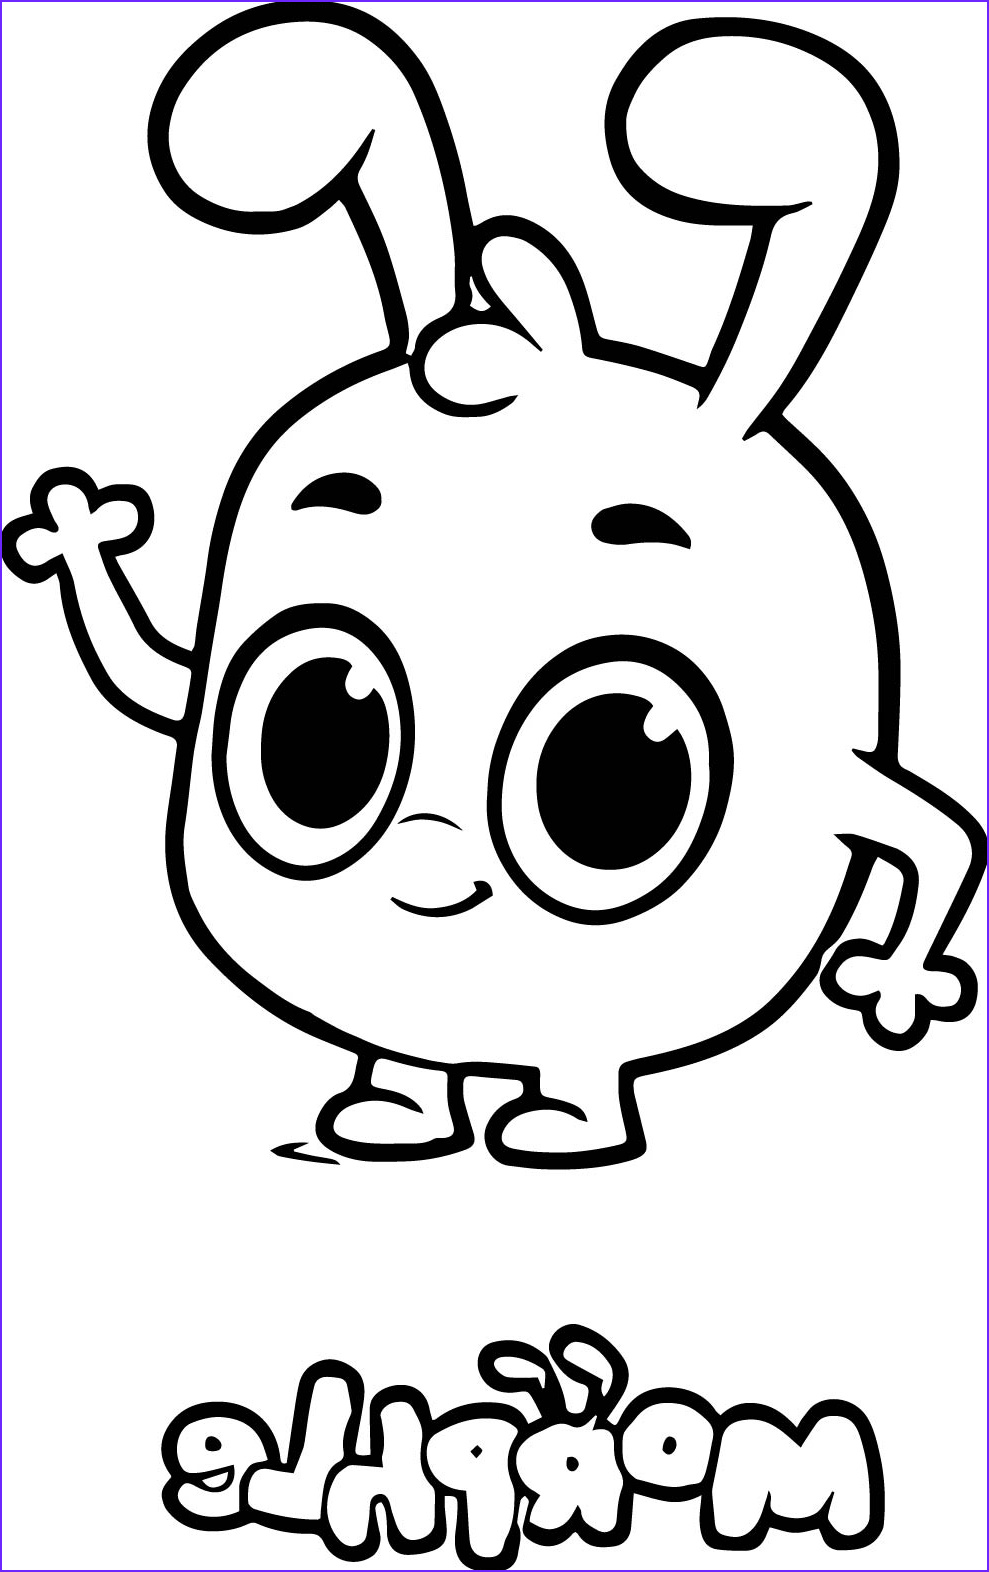 Cartoons Coloring Book Best Of Photos Morphle Cartoon My Cute Coloring Page